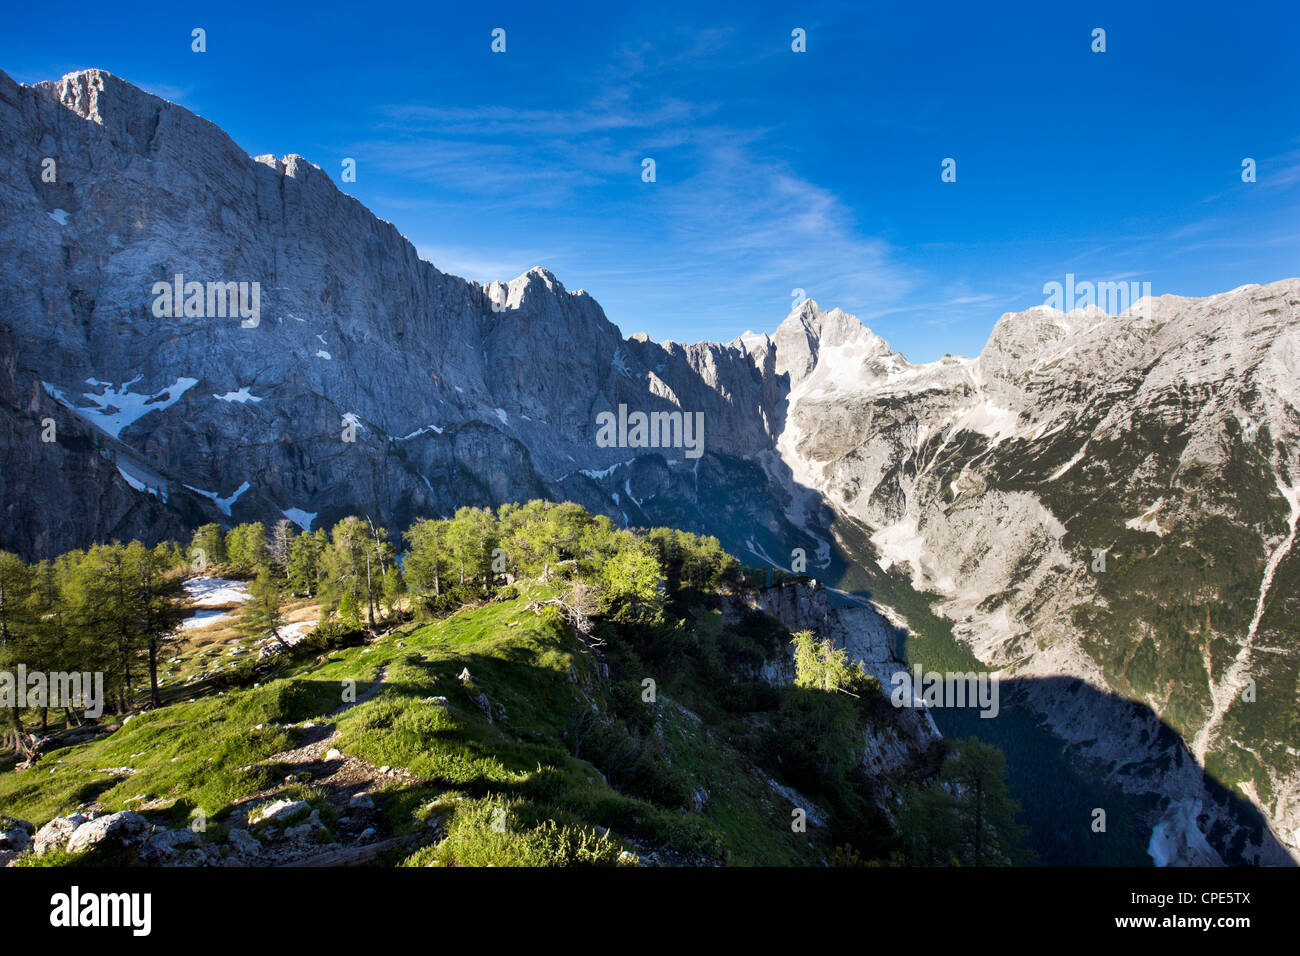 View from the top of Sleme, Julian Alps, Gorenjska, Slovenia, Europe - Stock Image